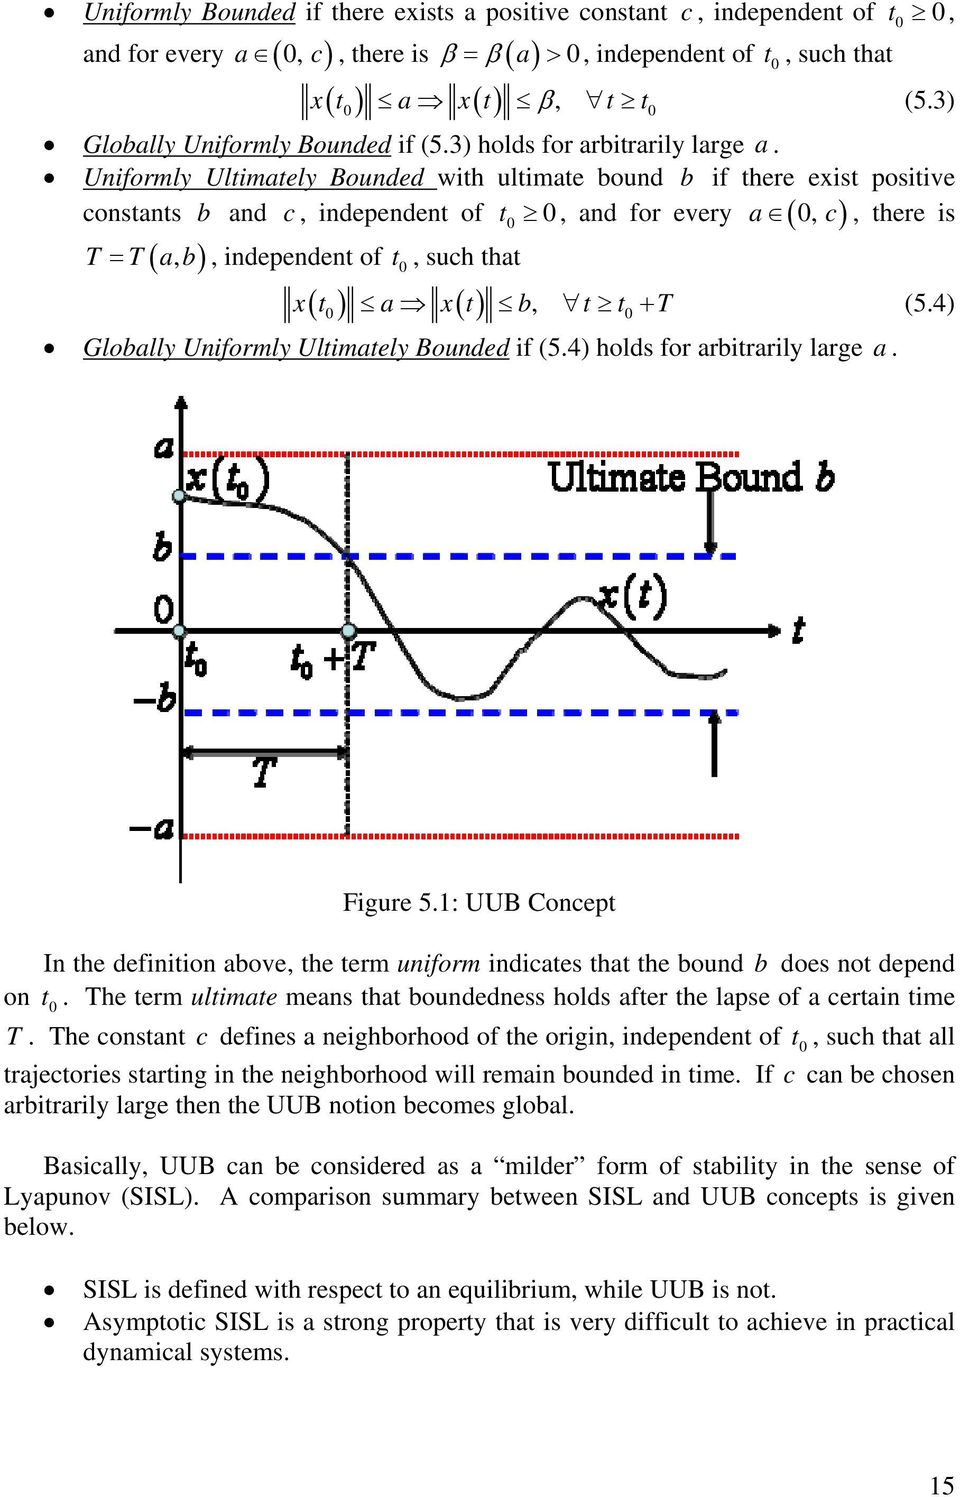 Uniformly Ultimately Bounded with ultimate bound b if there eist positive constants b and c, independent of 0 0 a 0, c, there is a, b, independent of t 0, such that 0 0 t, and for every t a t b, t t